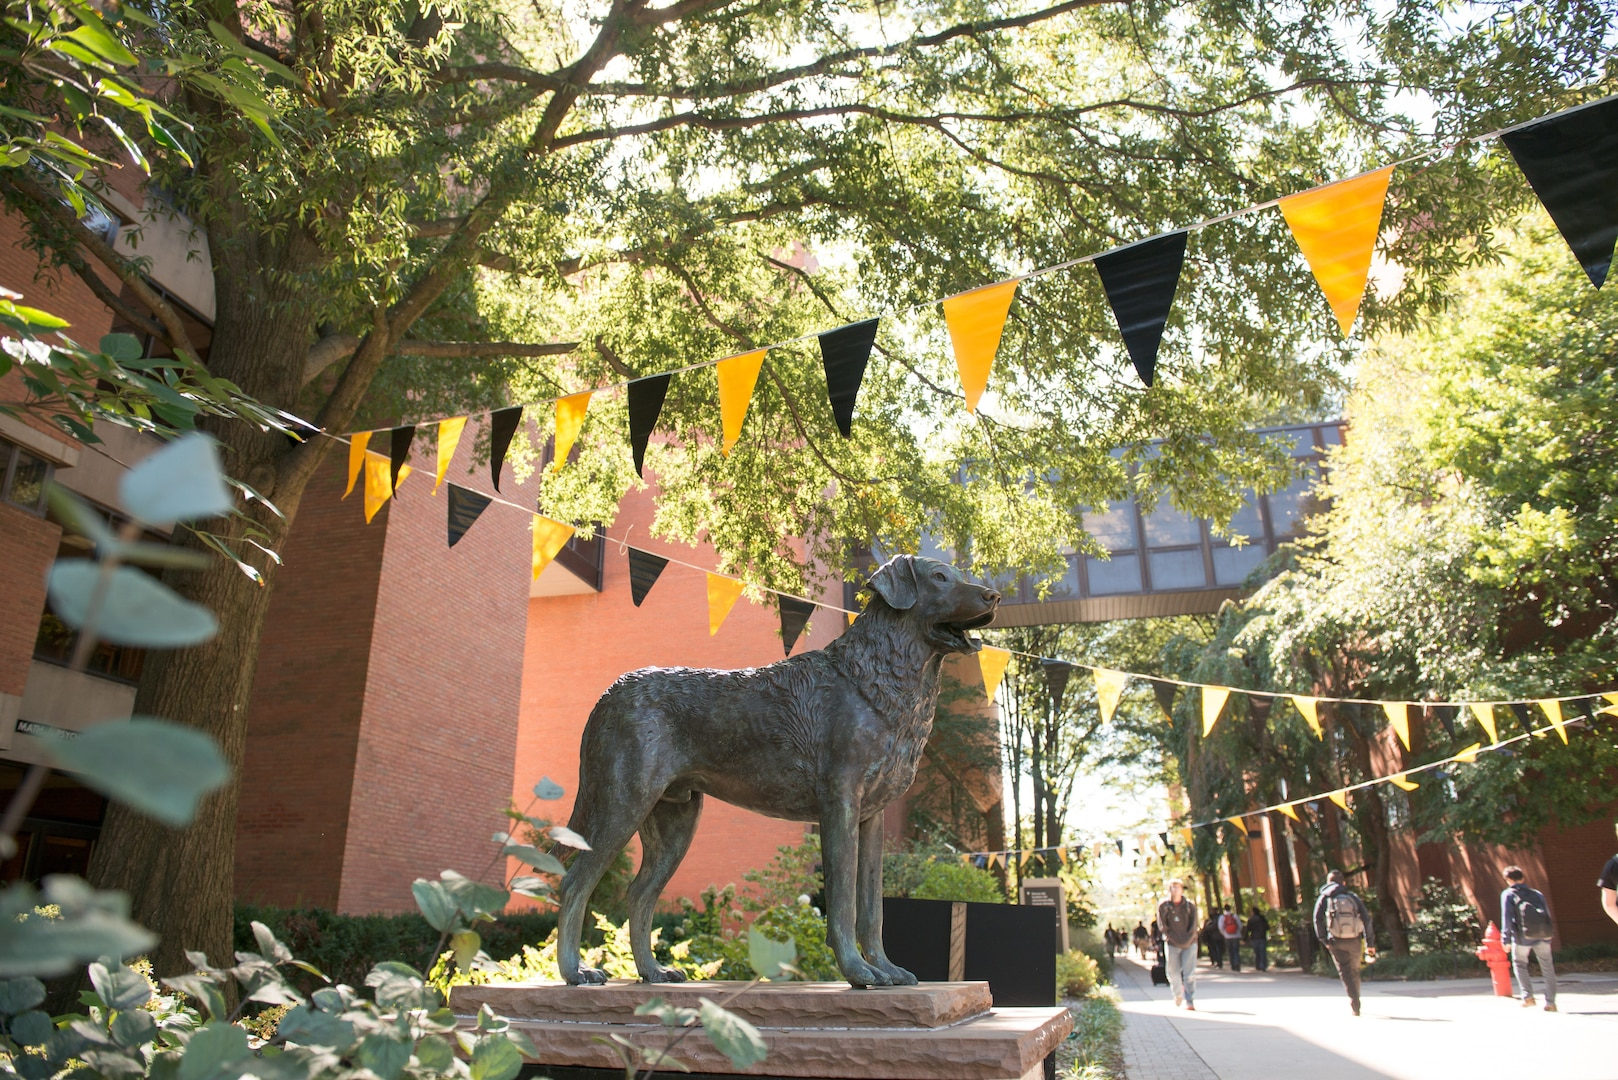 A bronze sculpture of UMBC's mascot True Grit, a Chesapeake Bay Retriever, stands proudly next to the main walking path between UMBC's academic buildings. Students can be seen walking on the path and there is canopy of trees and black and gold decorative flags overhead.